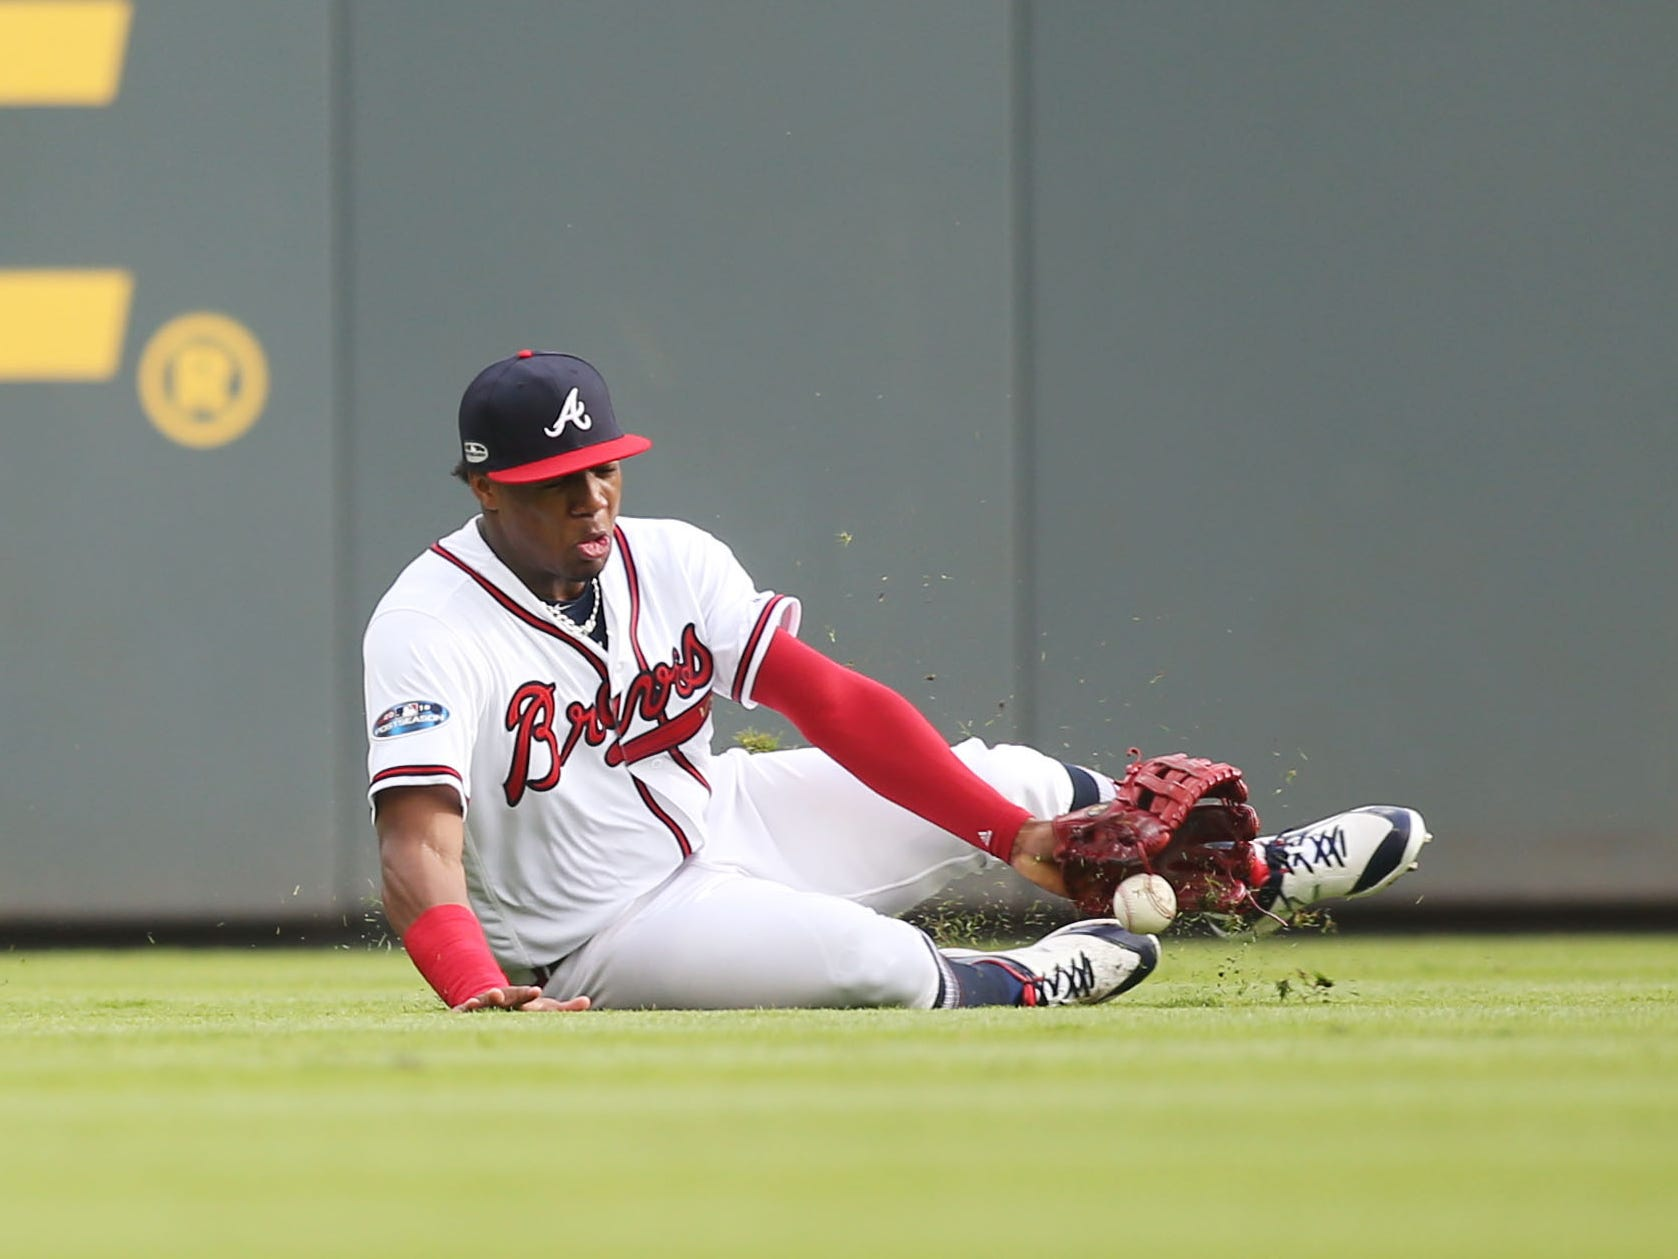 NLDS Game 4: Braves left fielder Ronald Acuna tries to make a catch early in the game.